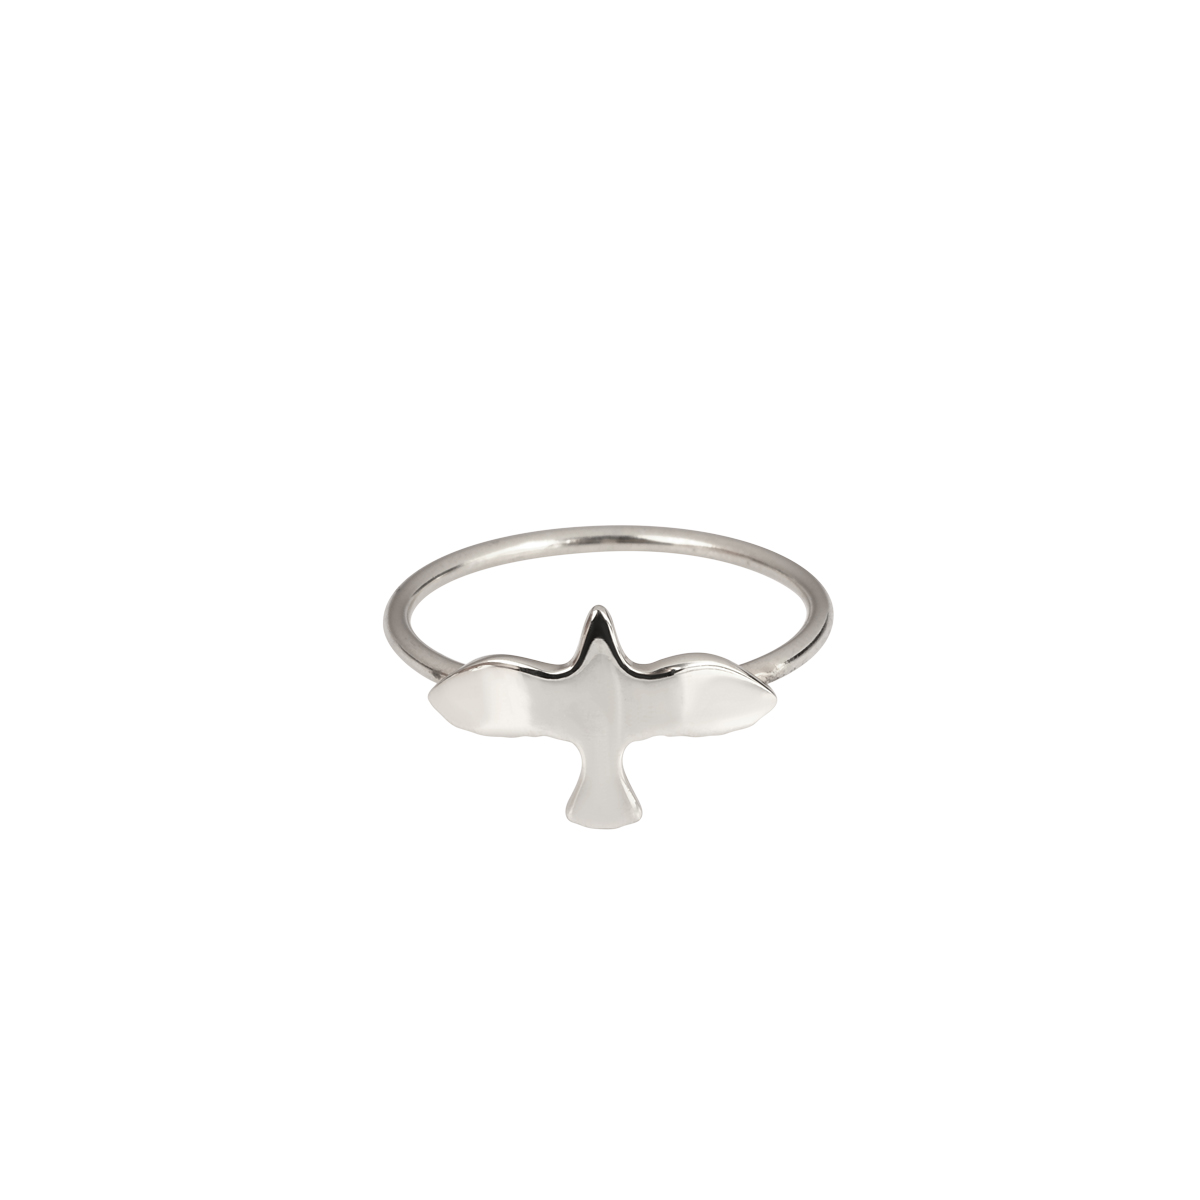 SILVER DOVE RING in the group RINGS at EMMA ISRAELSSON (ring080)